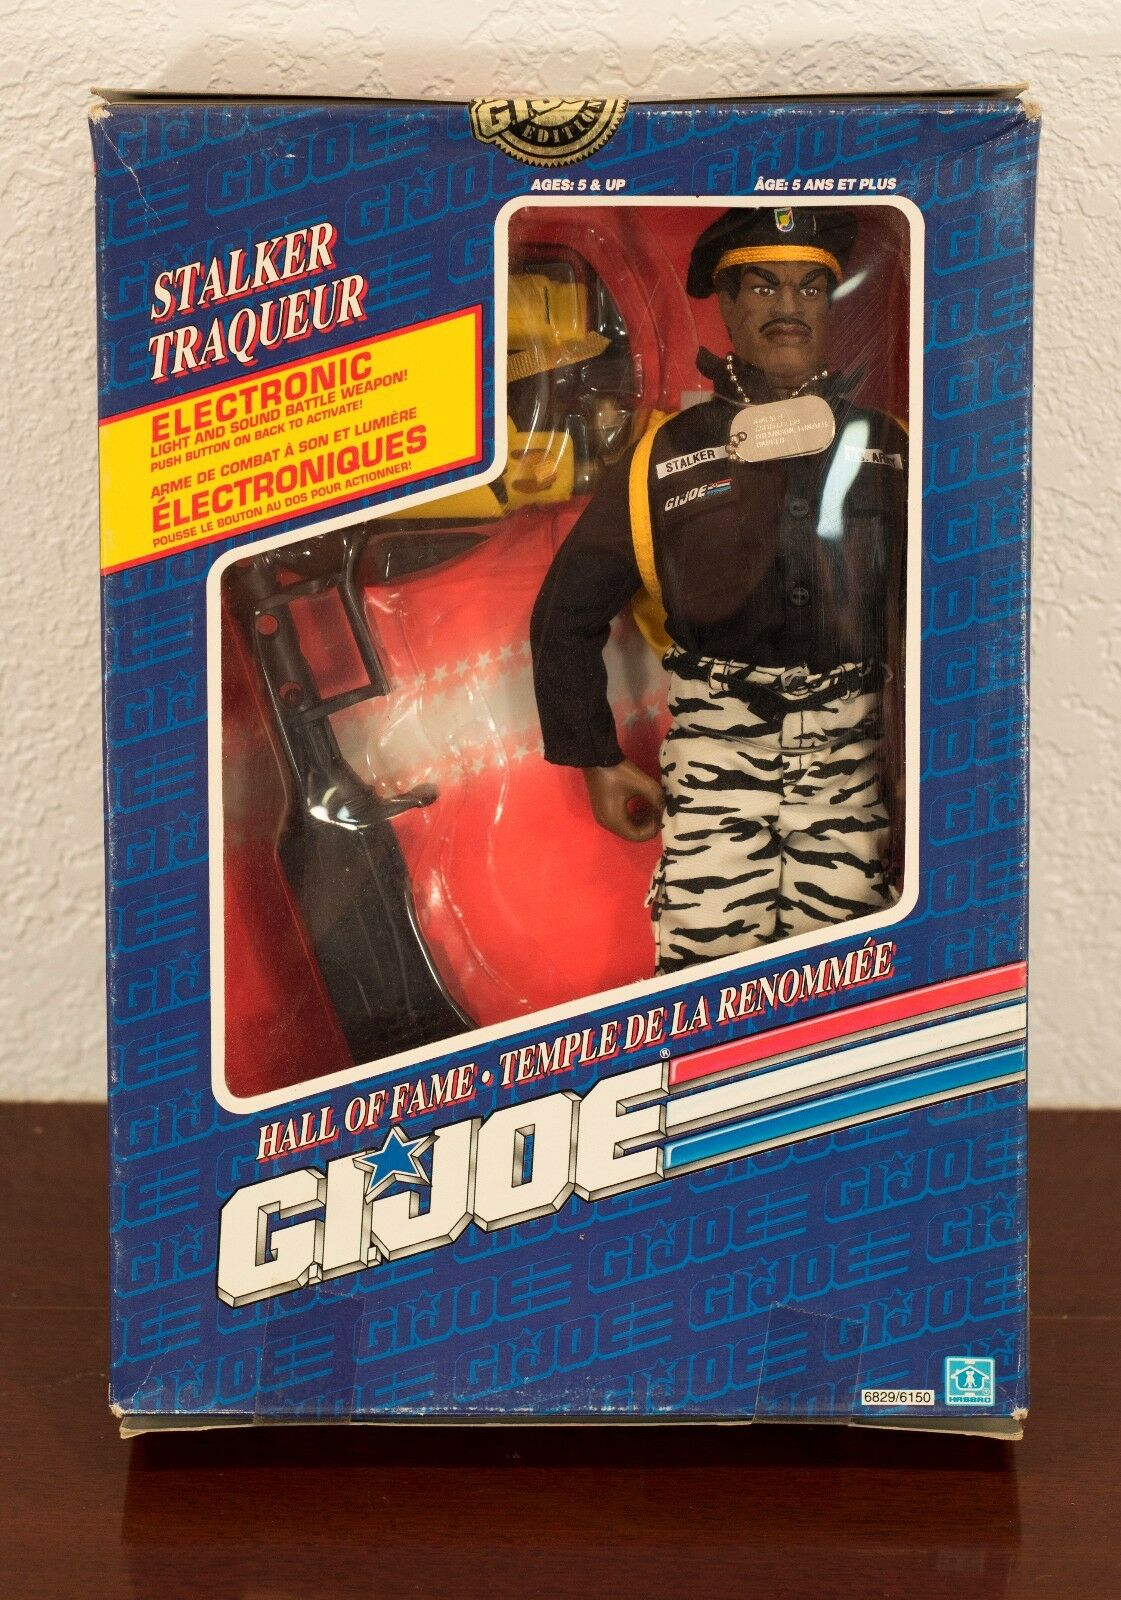 1991 - gi joe hall of fame stalker traqueur actionfigur mib